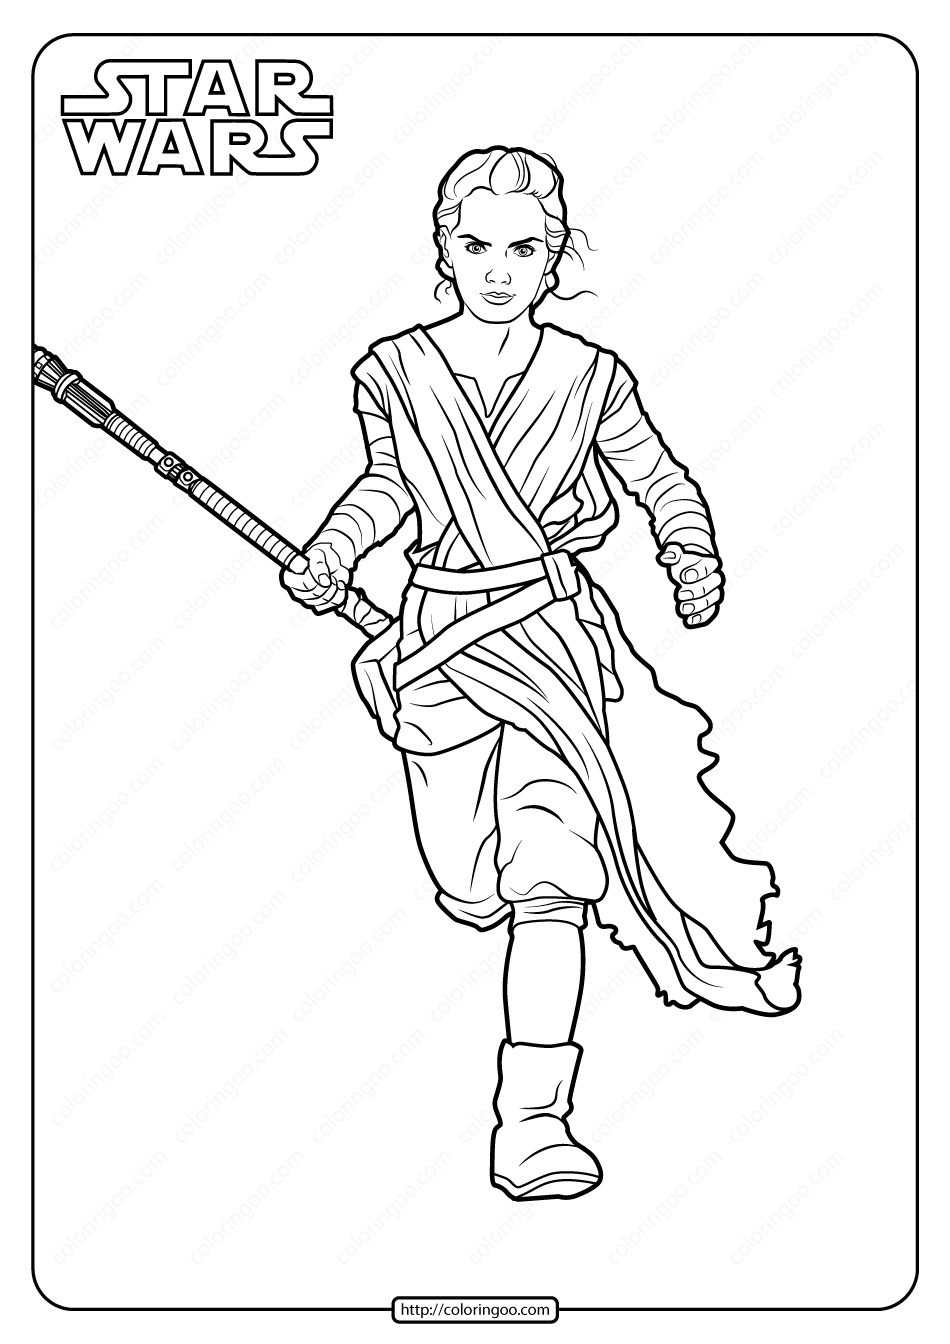 Star Wars Rey Printable Coloring Pages Book In 2020 Rey Star Wars Coloring Pages Star Wars Drawings